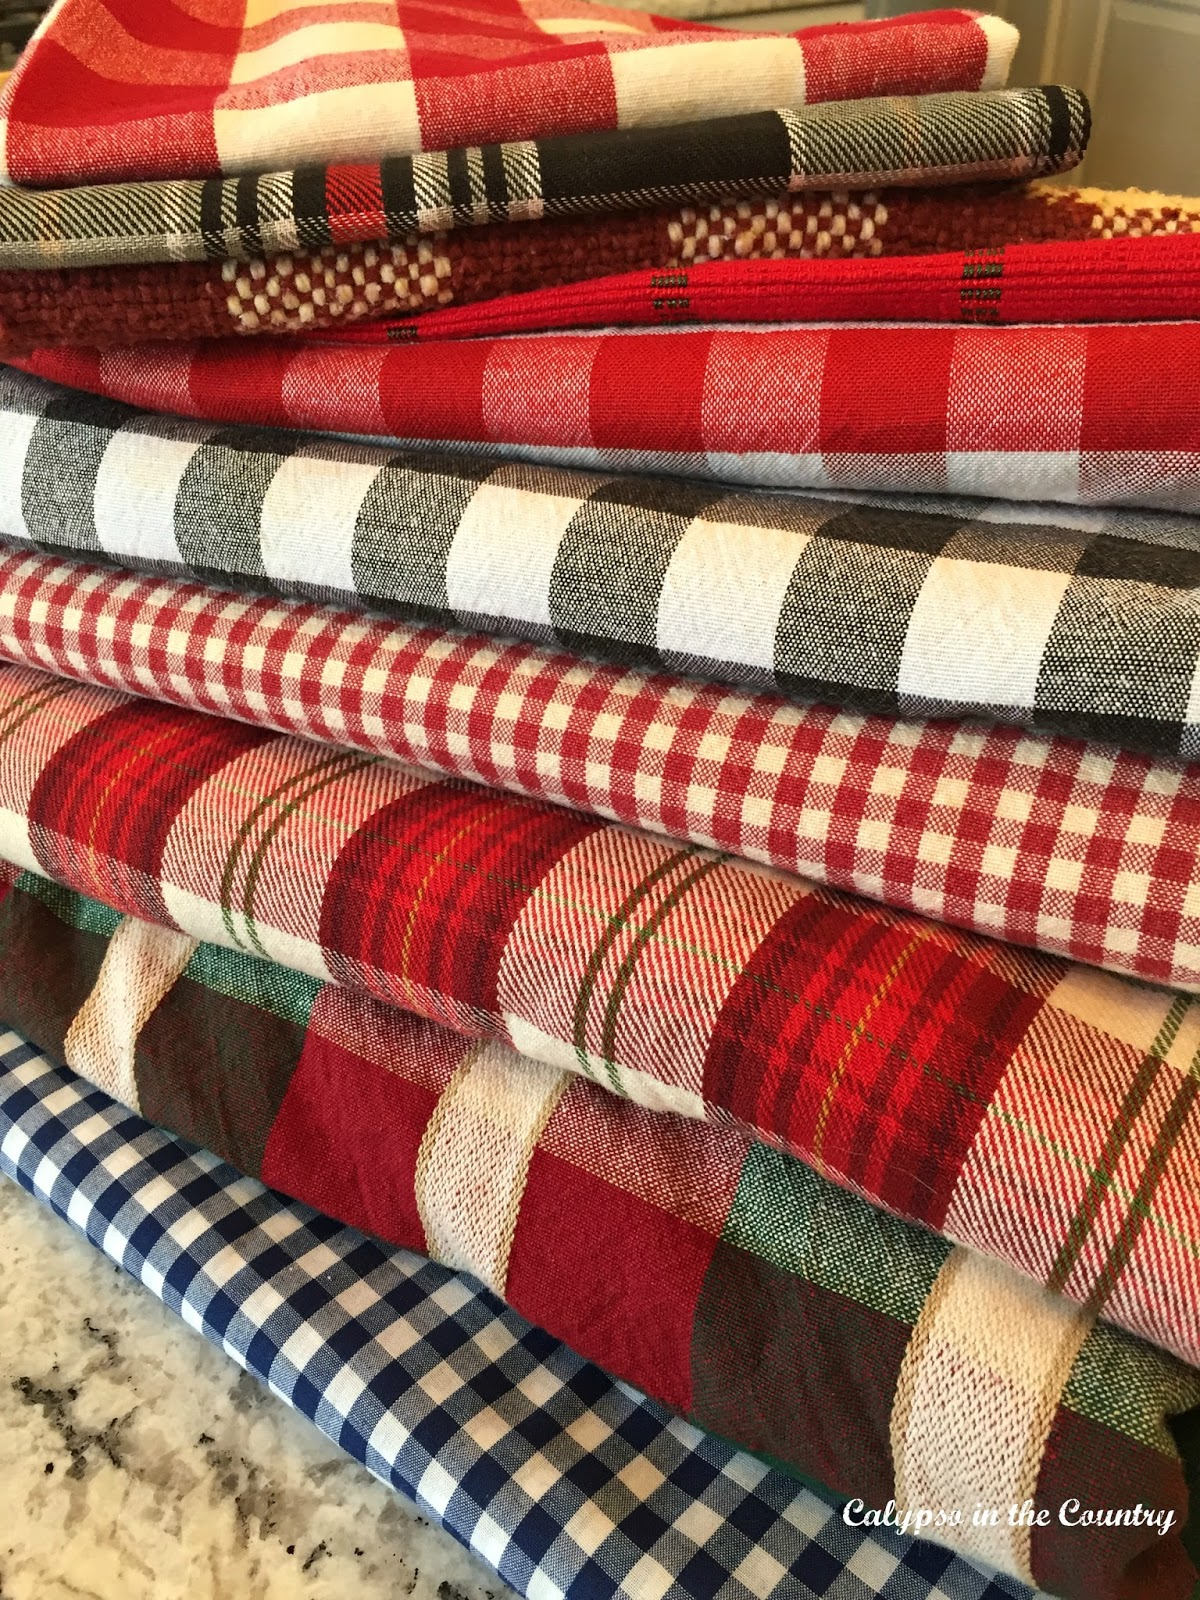 Plaids and Checks for fall